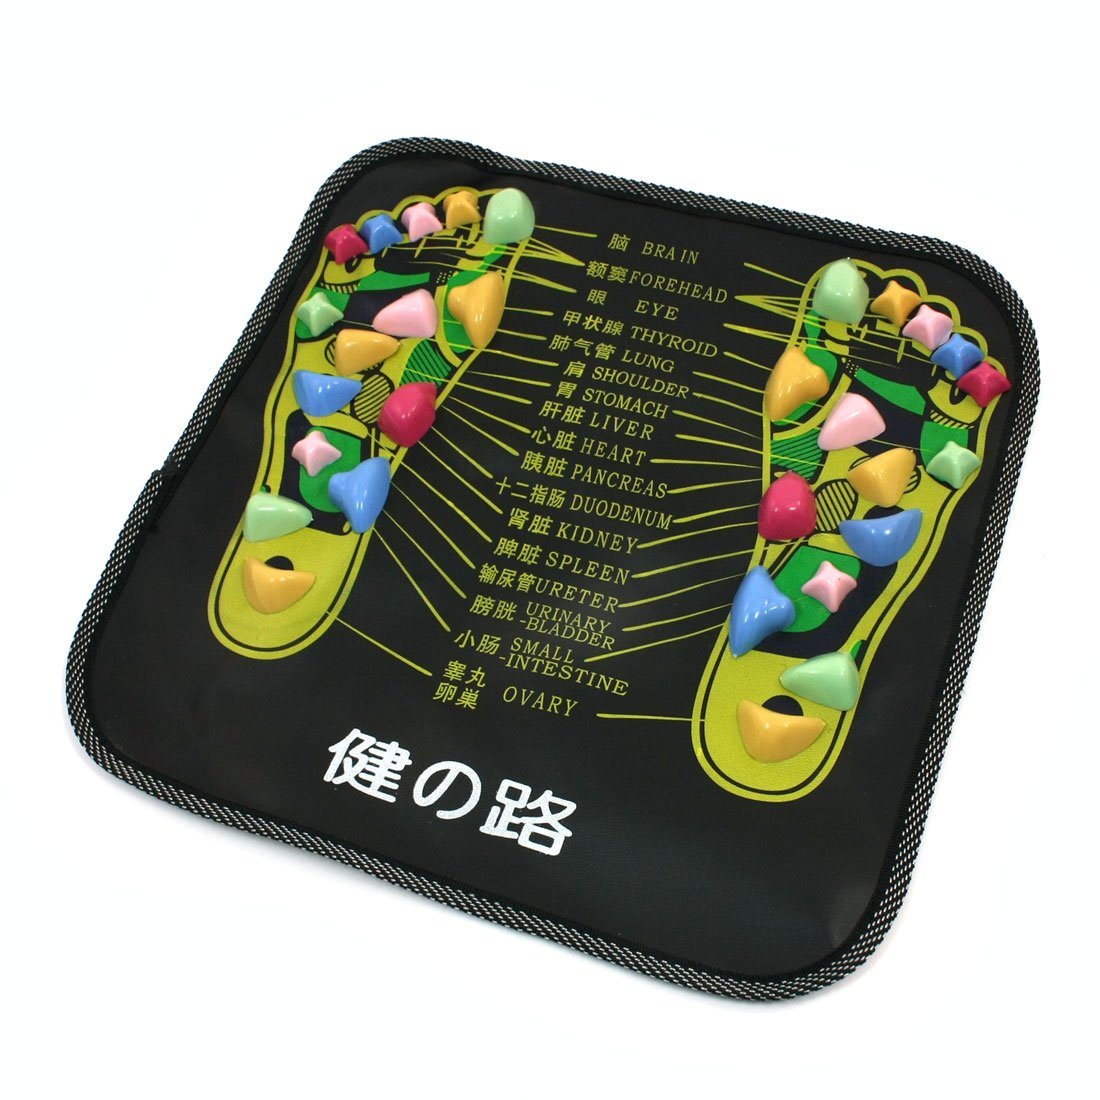 YOST Chinese Health Care Colored Plastic Walk Stone Square Healthy Foot Massage Mat Pad Cushion natural stone cobblestone foot massage pad foot massage device stone pad blanket mat plate